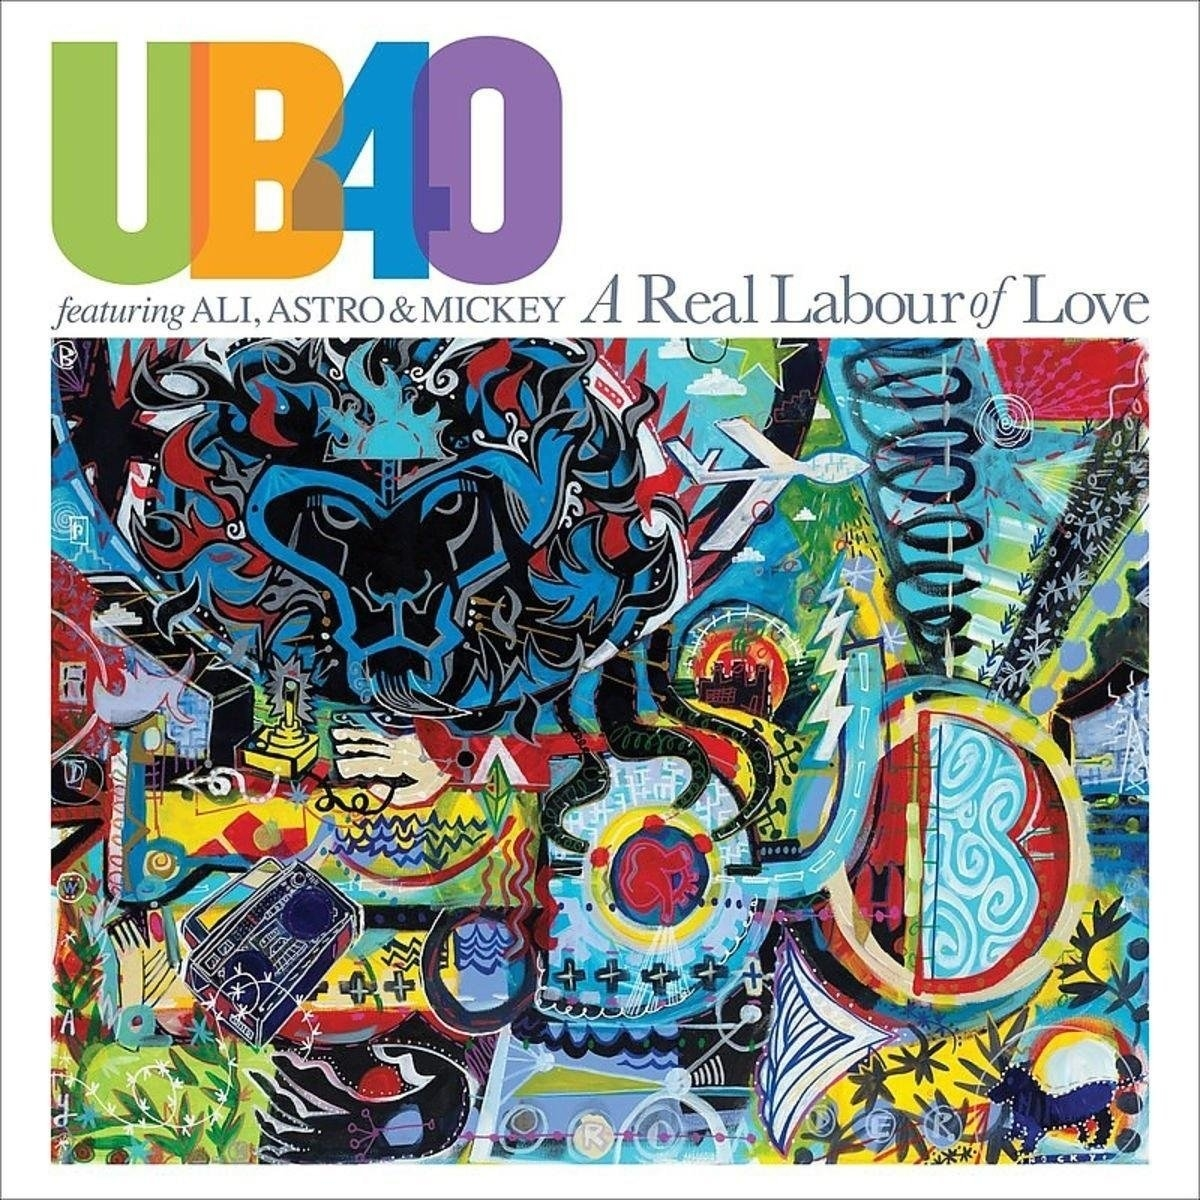 world 04 18 Reg UB 40